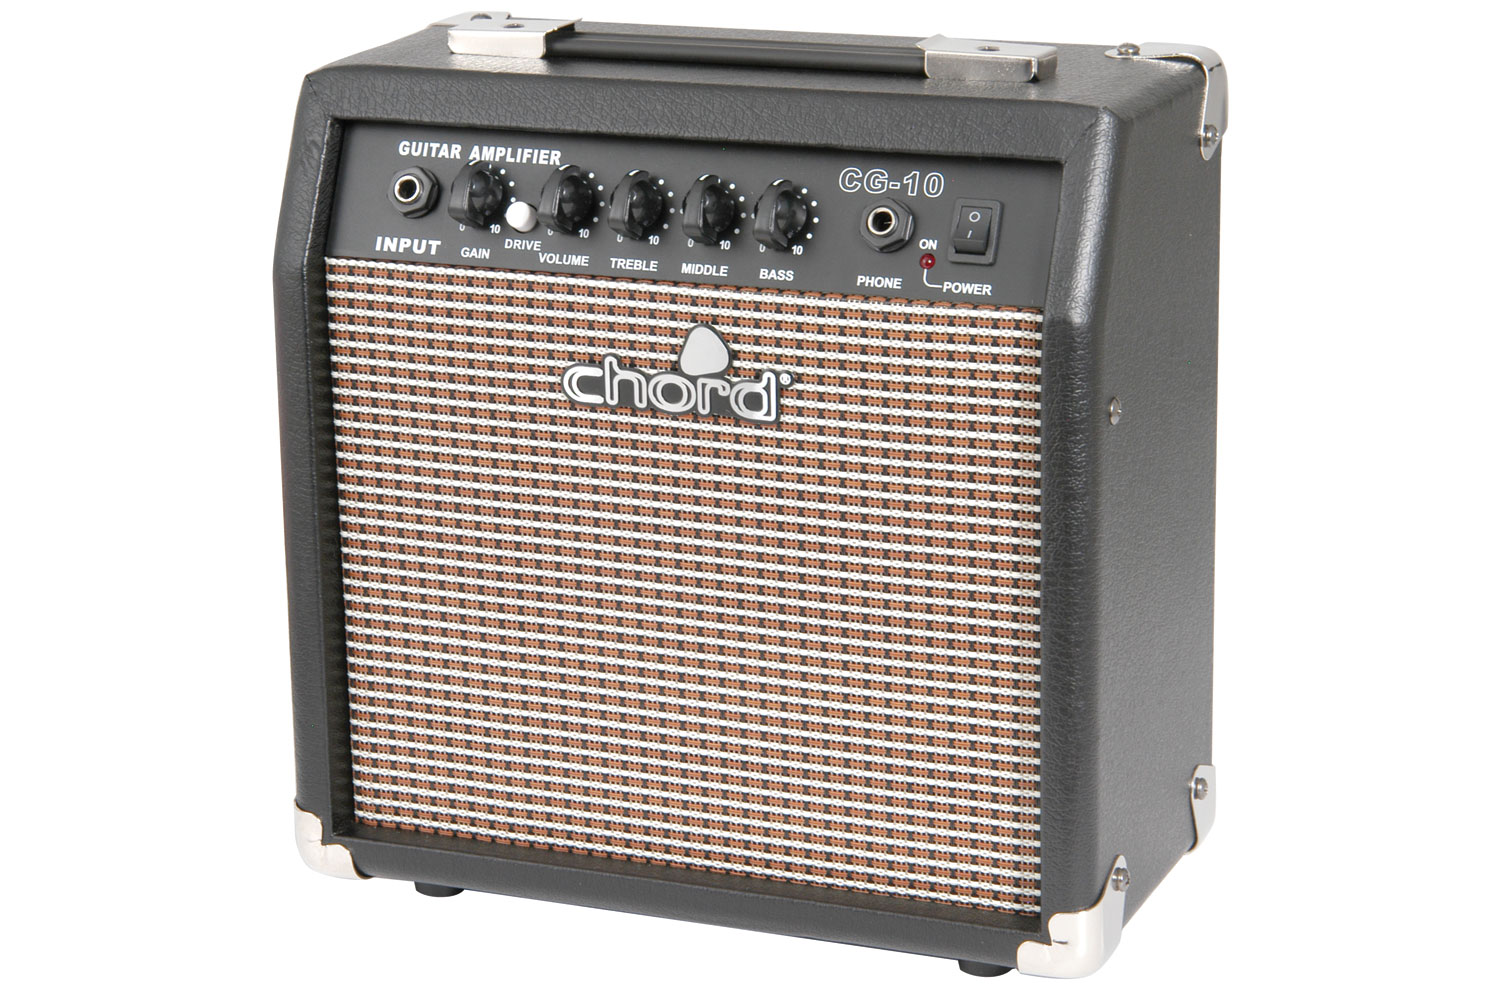 chord 30 watt guitar amplifier musical electronics cricklewood electronics. Black Bedroom Furniture Sets. Home Design Ideas